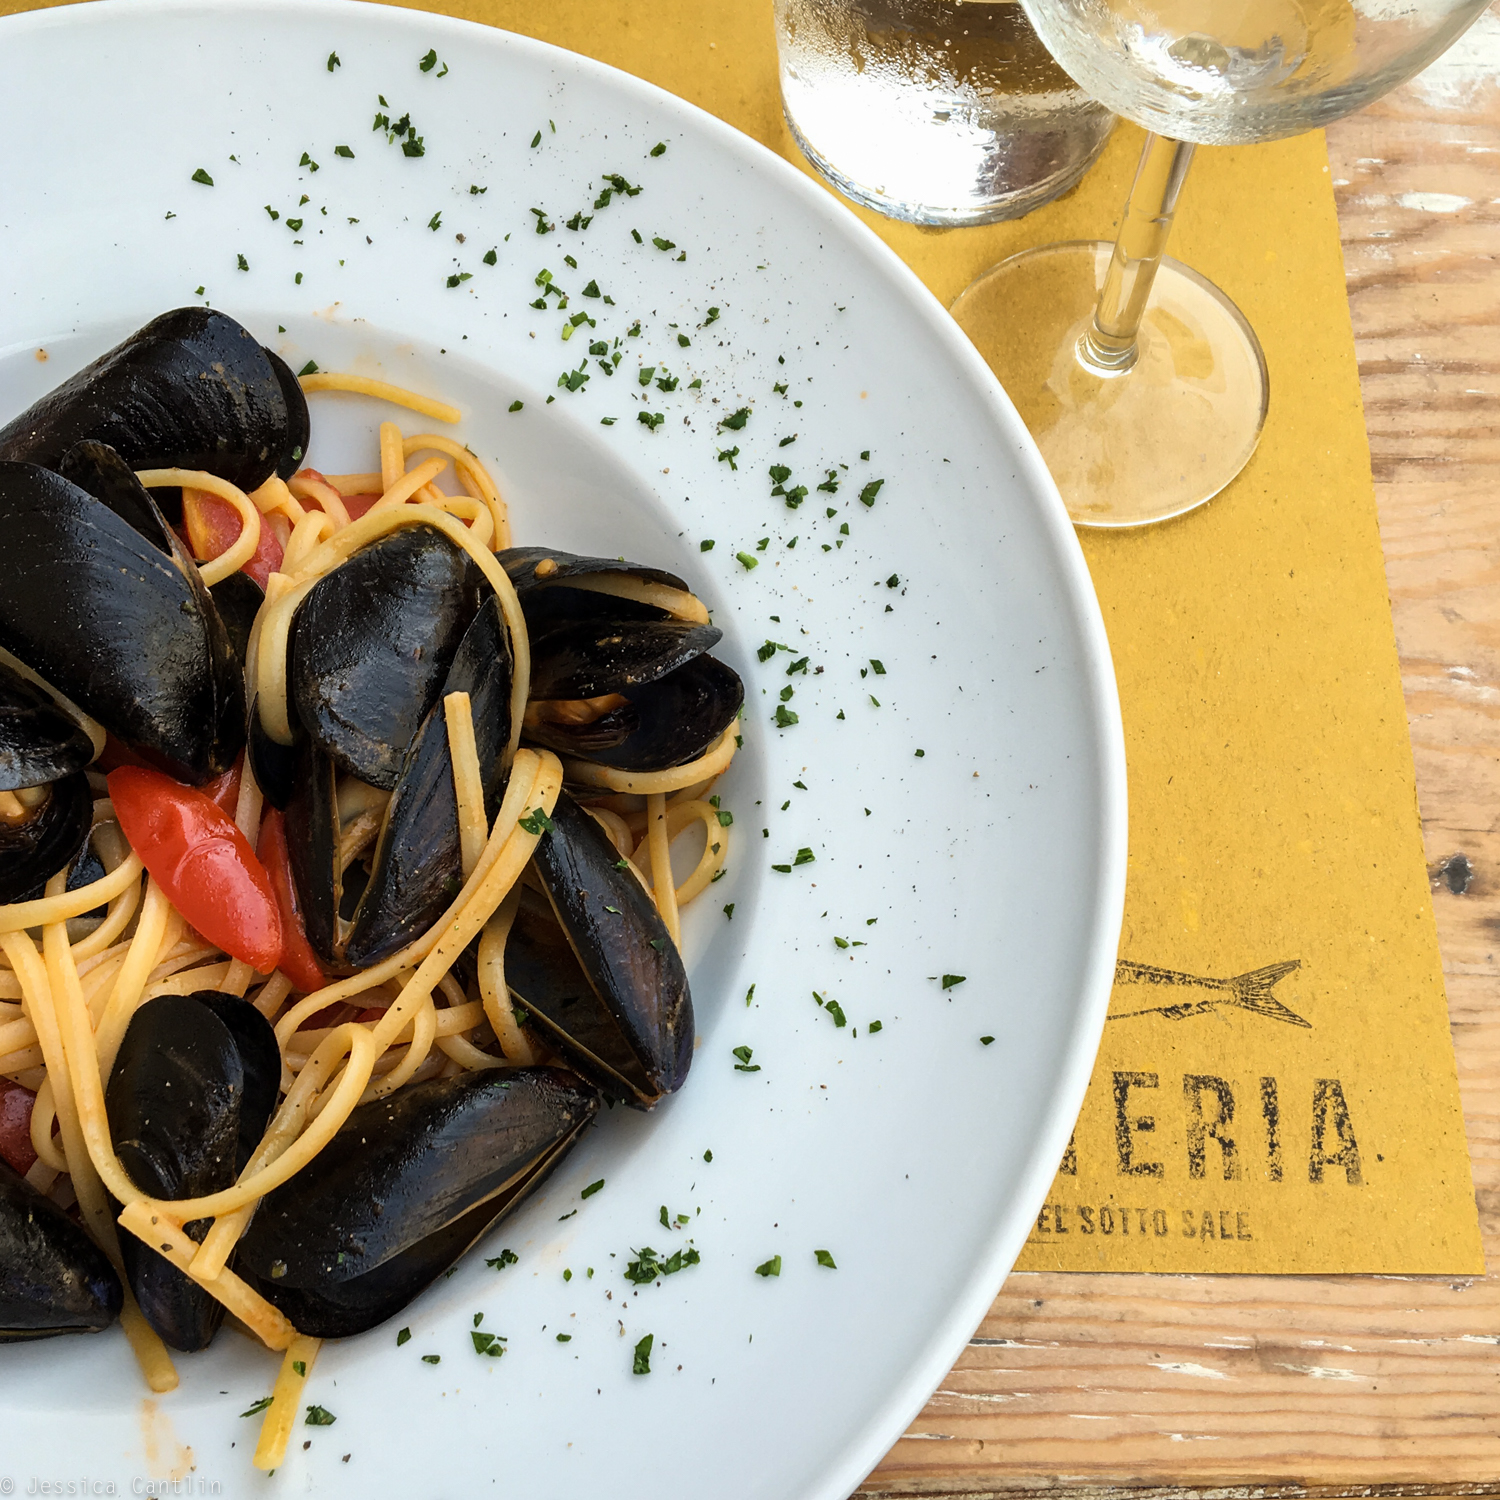 Mussels at Osteria del Sotto Sale